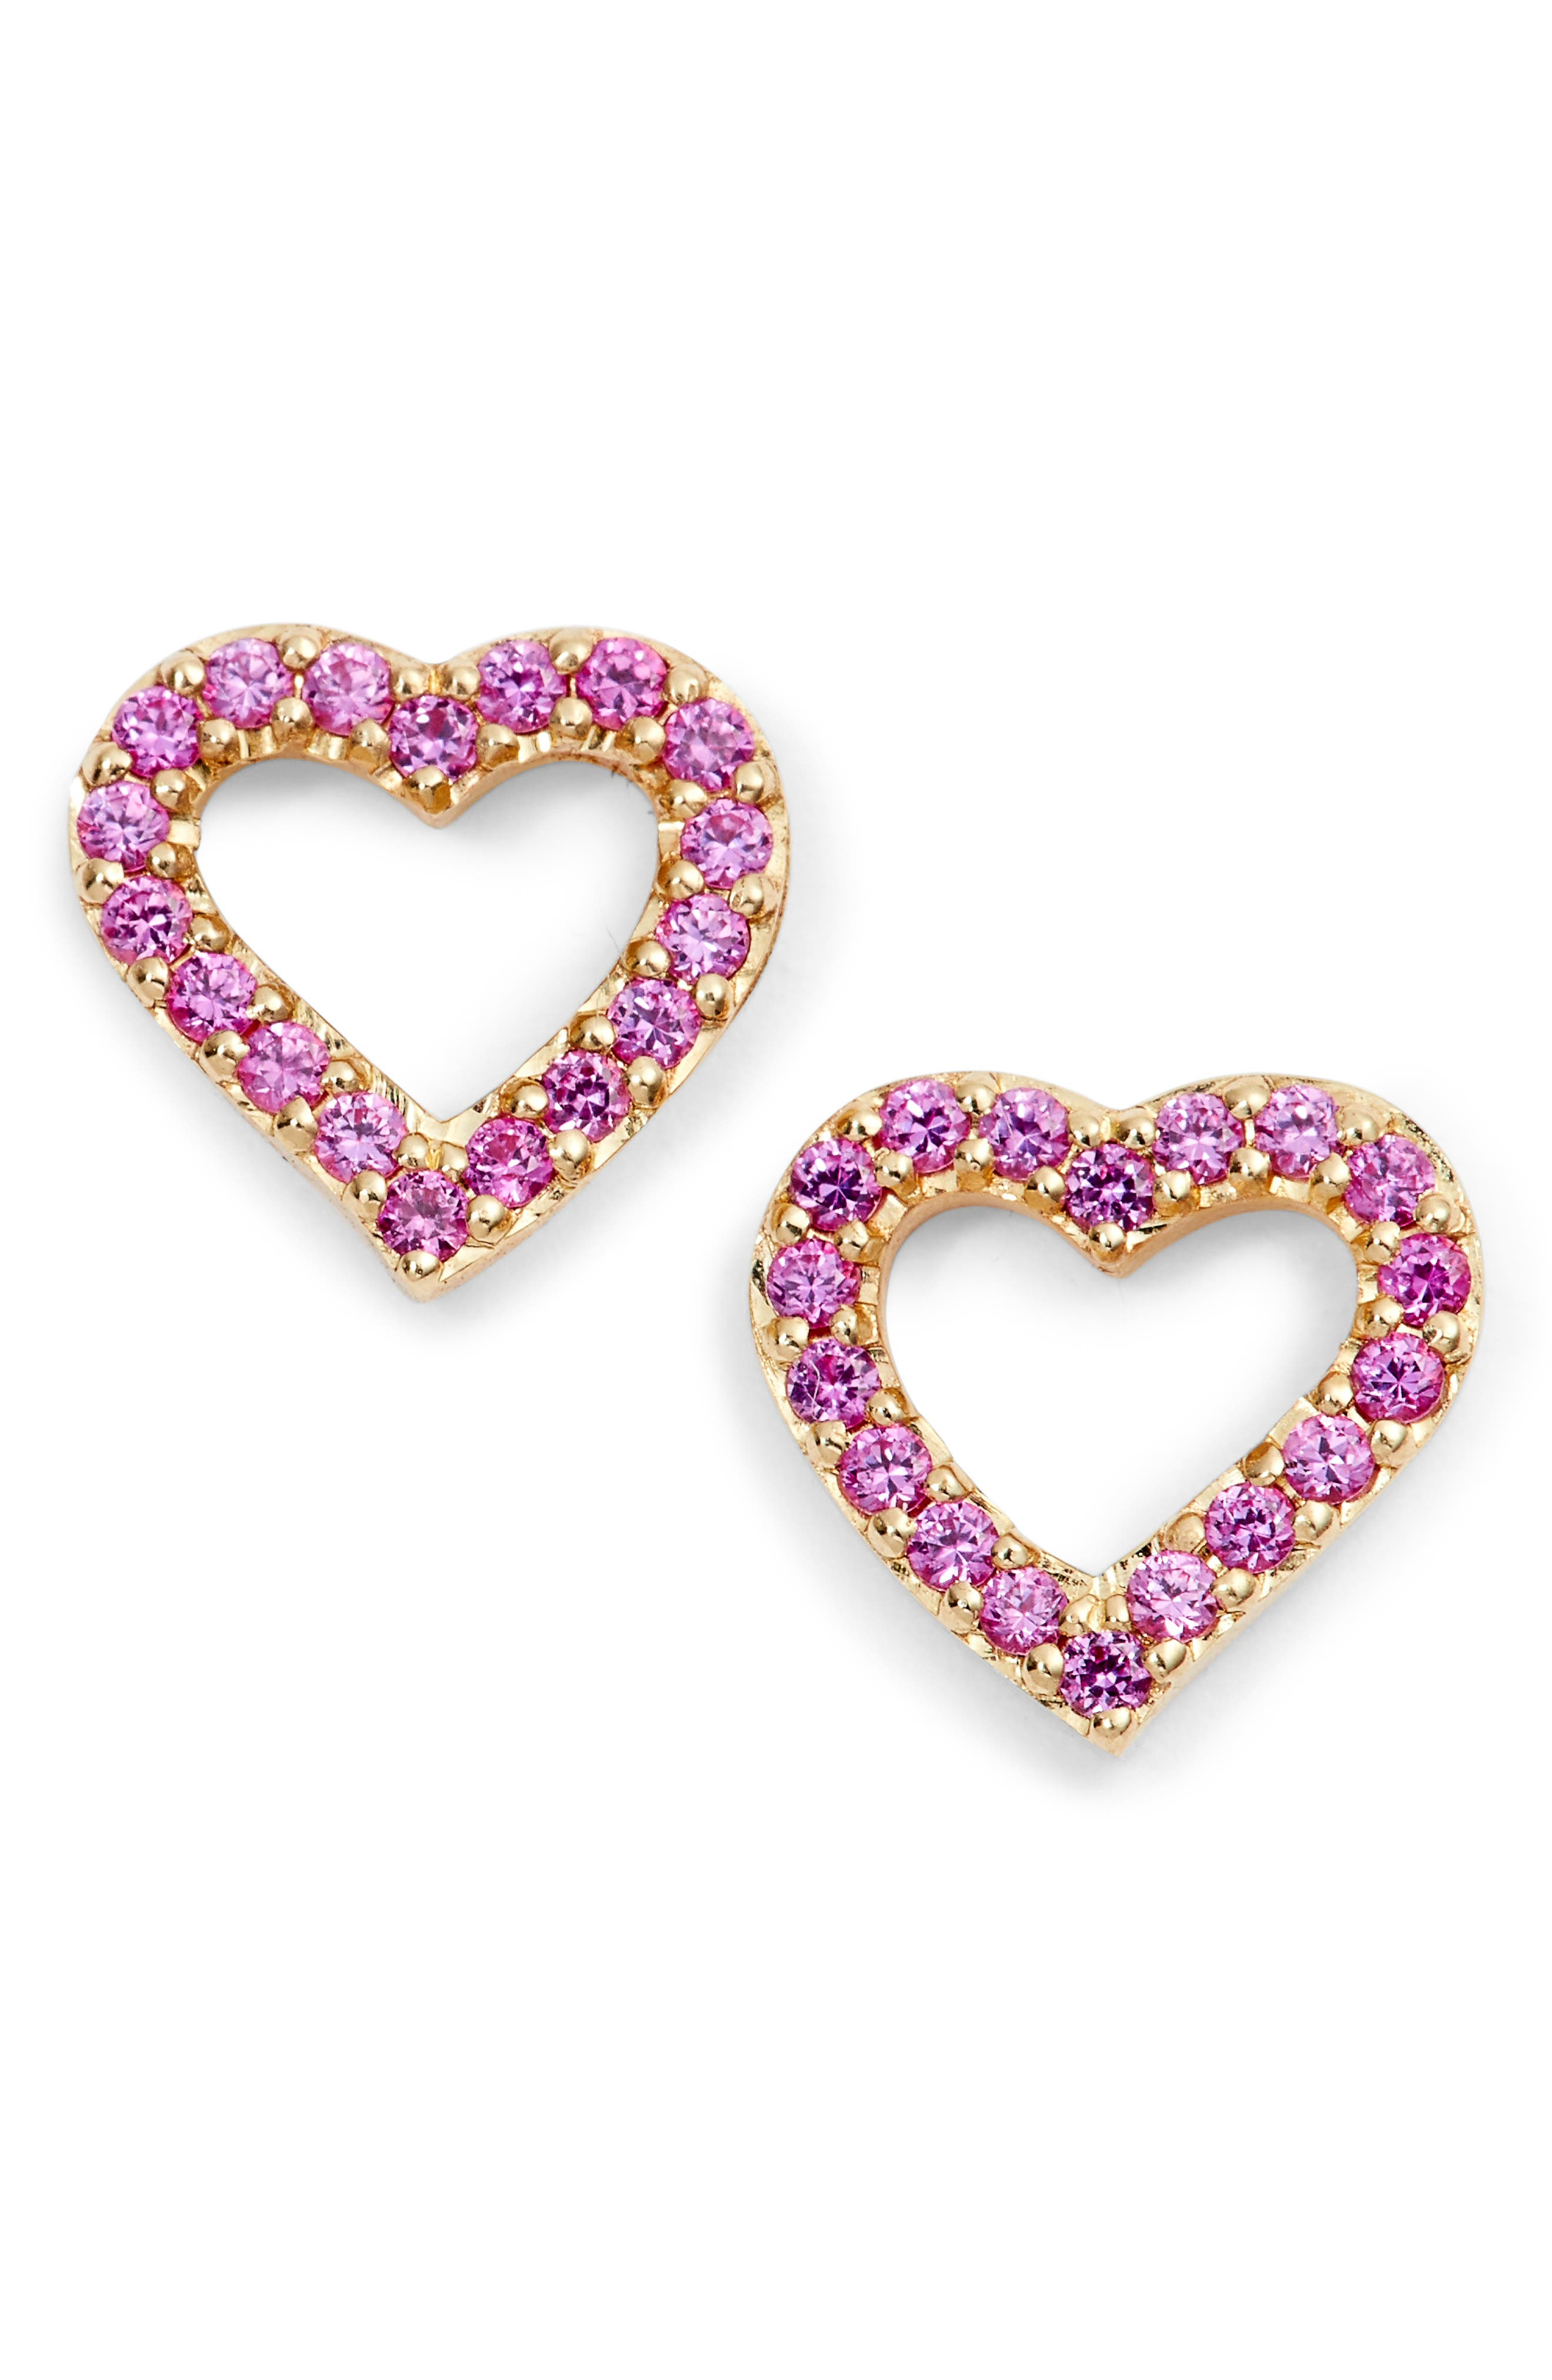 Mini Heart Sapphire Stud Earrings,                             Main thumbnail 1, color,                             Yellow Gold